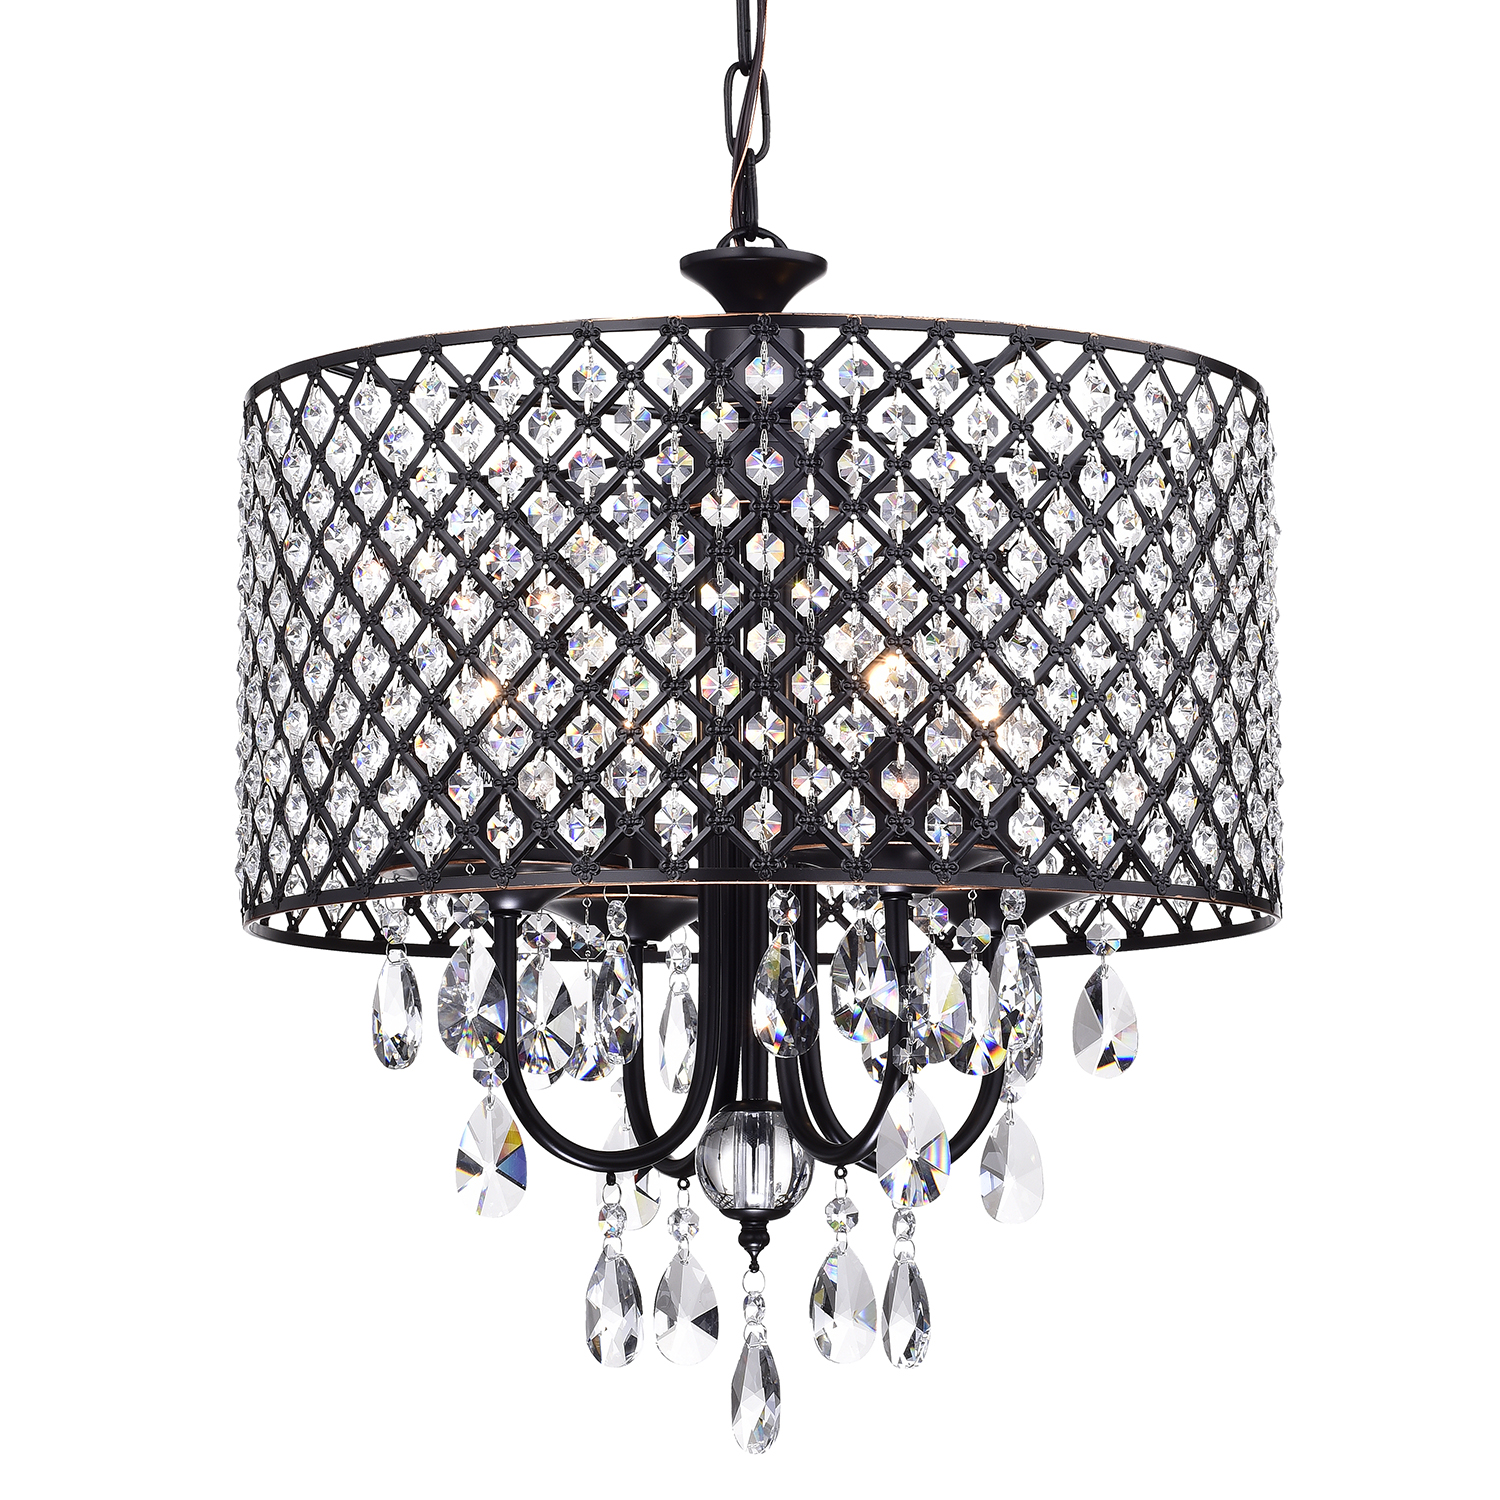 Image of: Marya 4 Light Oil Rubbed Bronze Round Beaded Drum Chandelier Hanging Crystals Edvivi Lighting